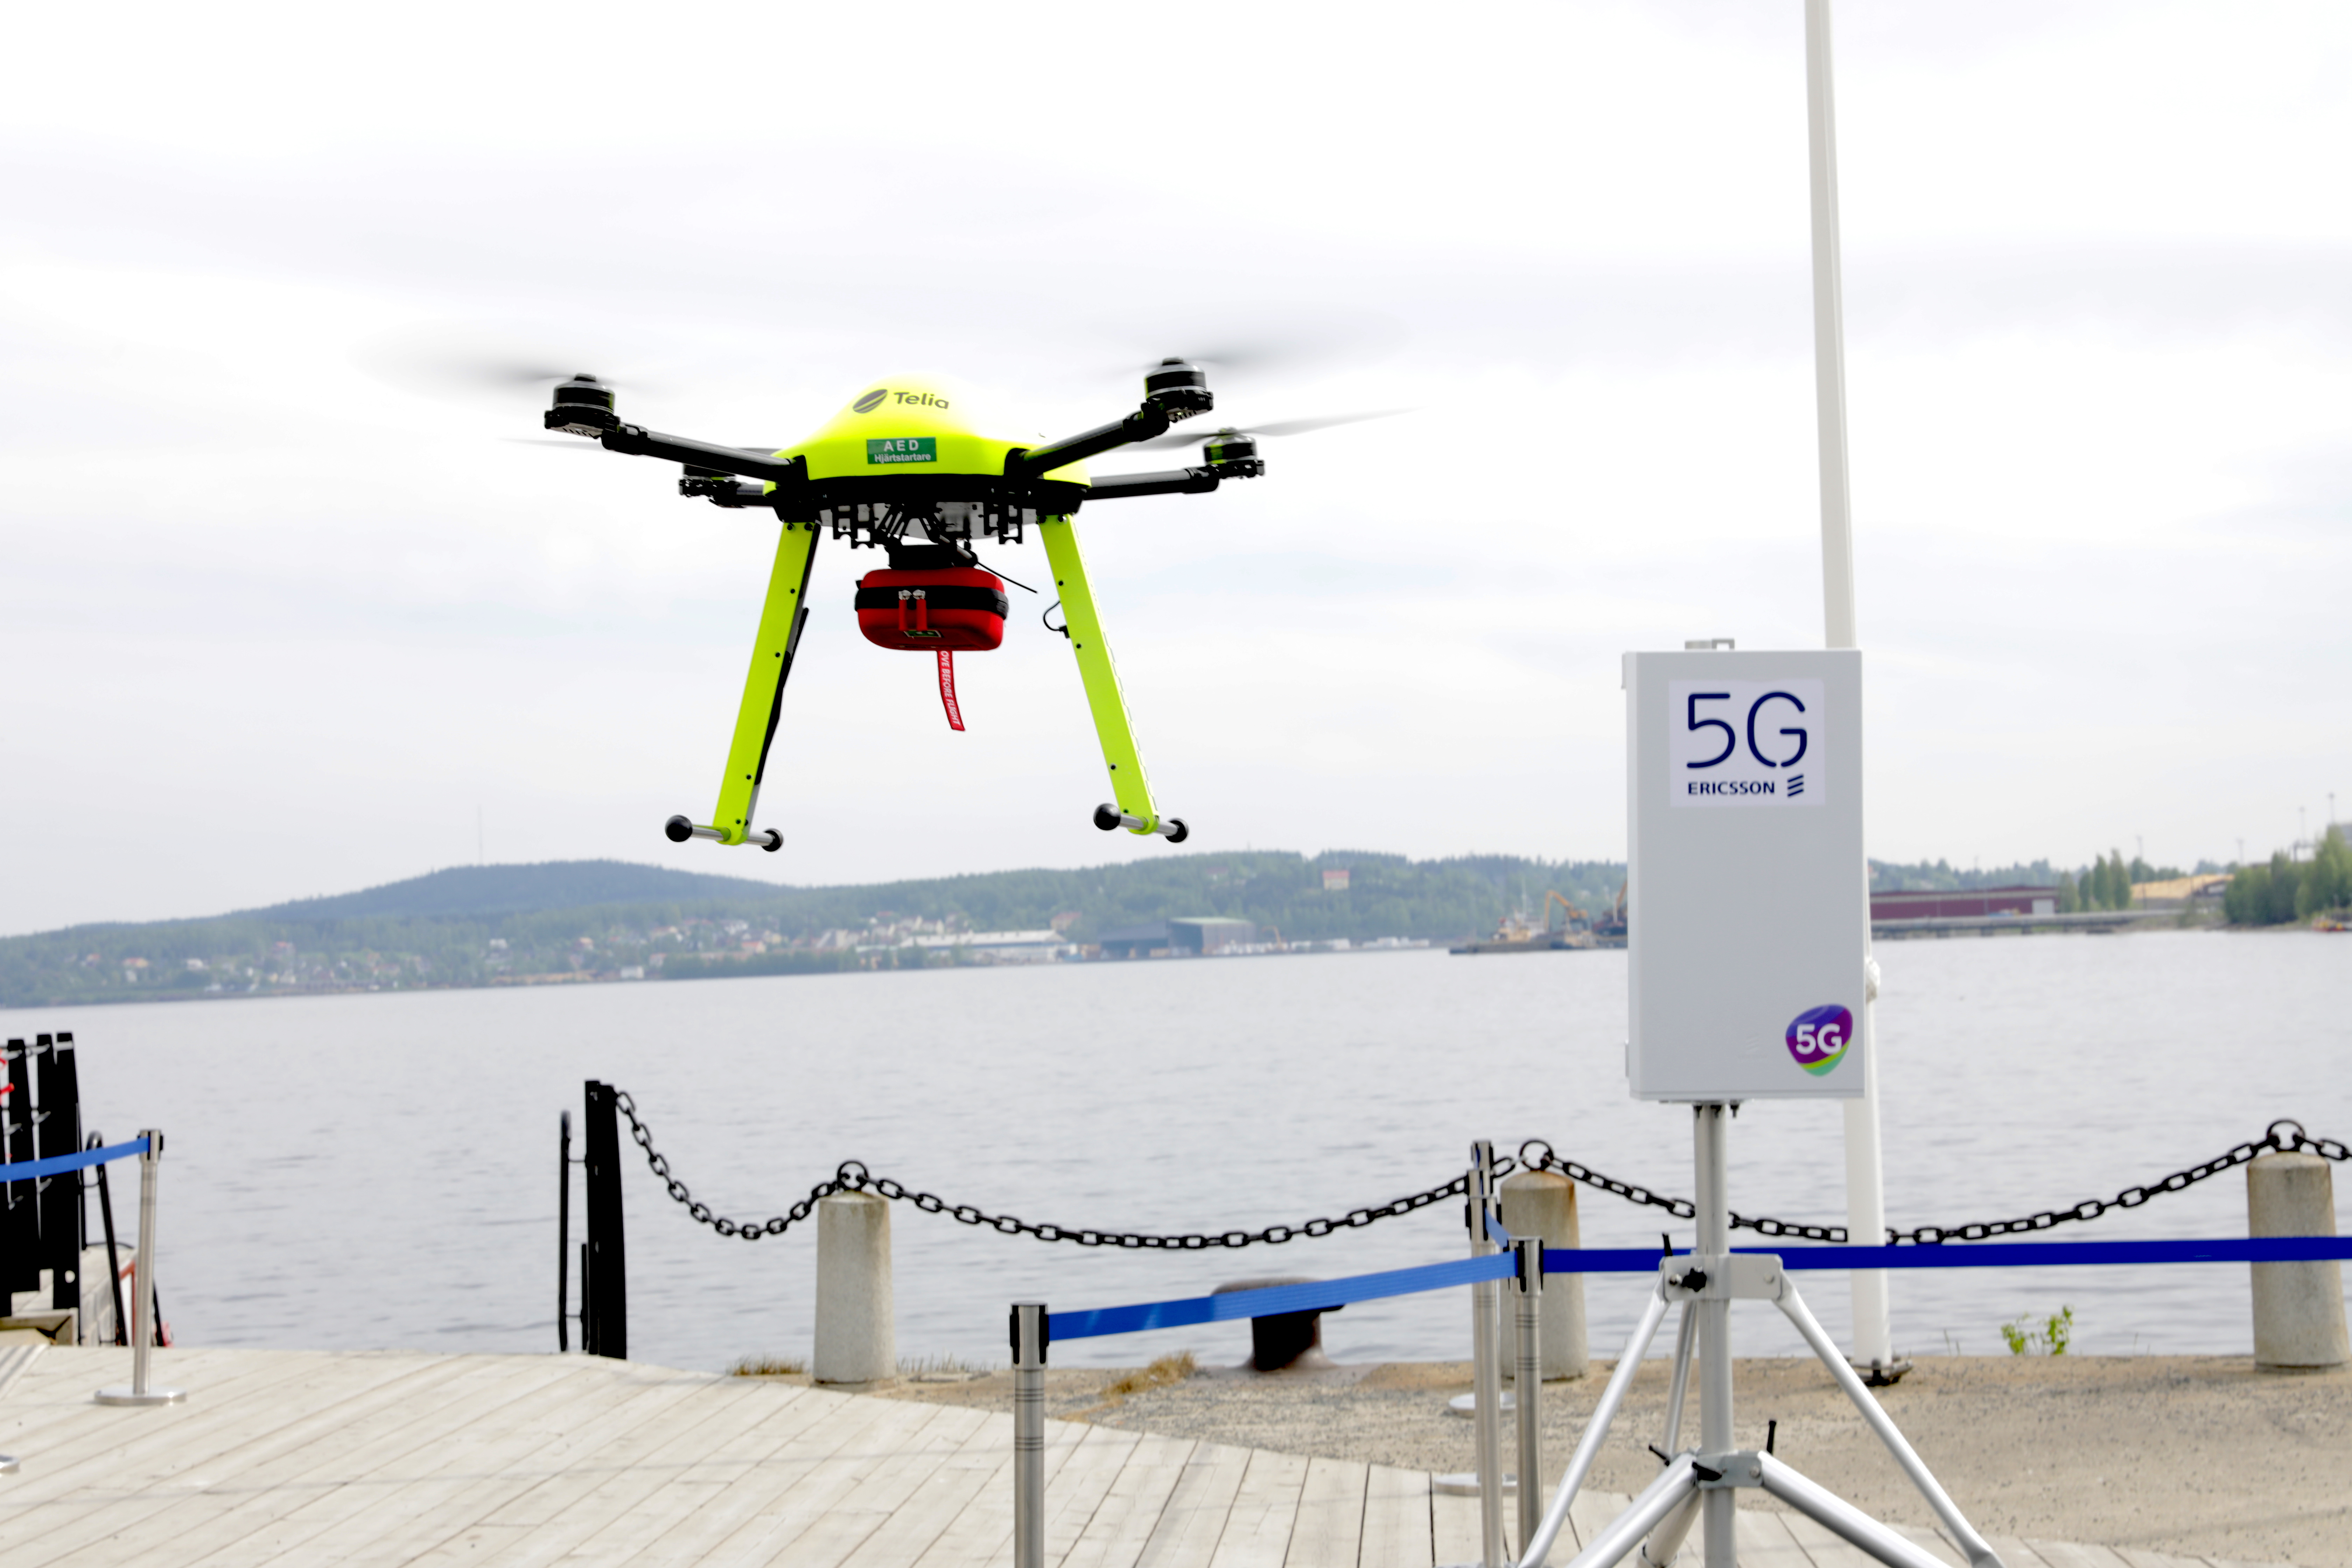 Airborne defibrillators showed Nordic ministers the future with 5G